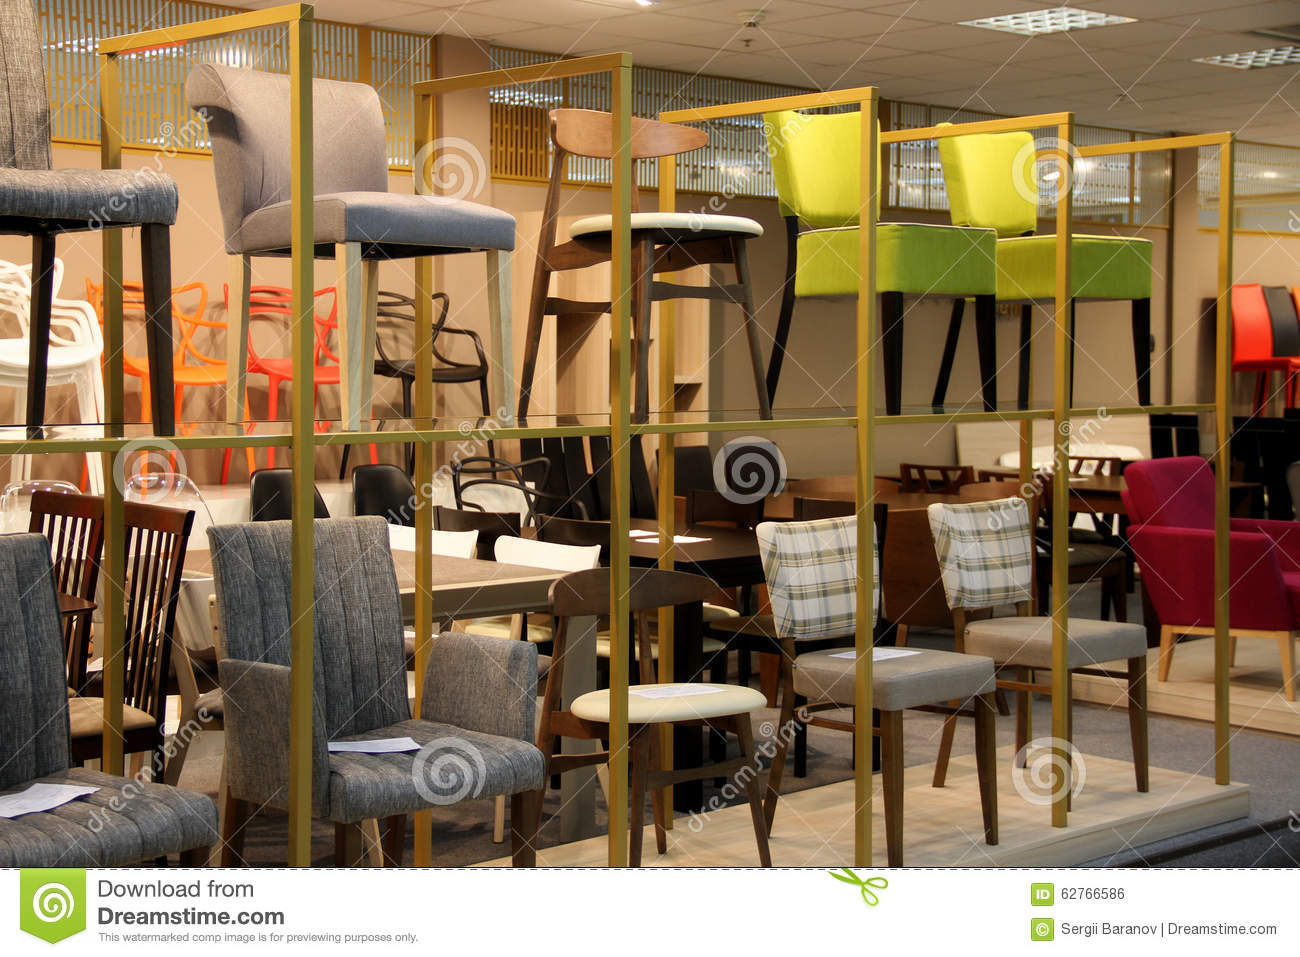 Stools And Chairs Exhibition In Shopping Mall Stock Photo - Image of ...